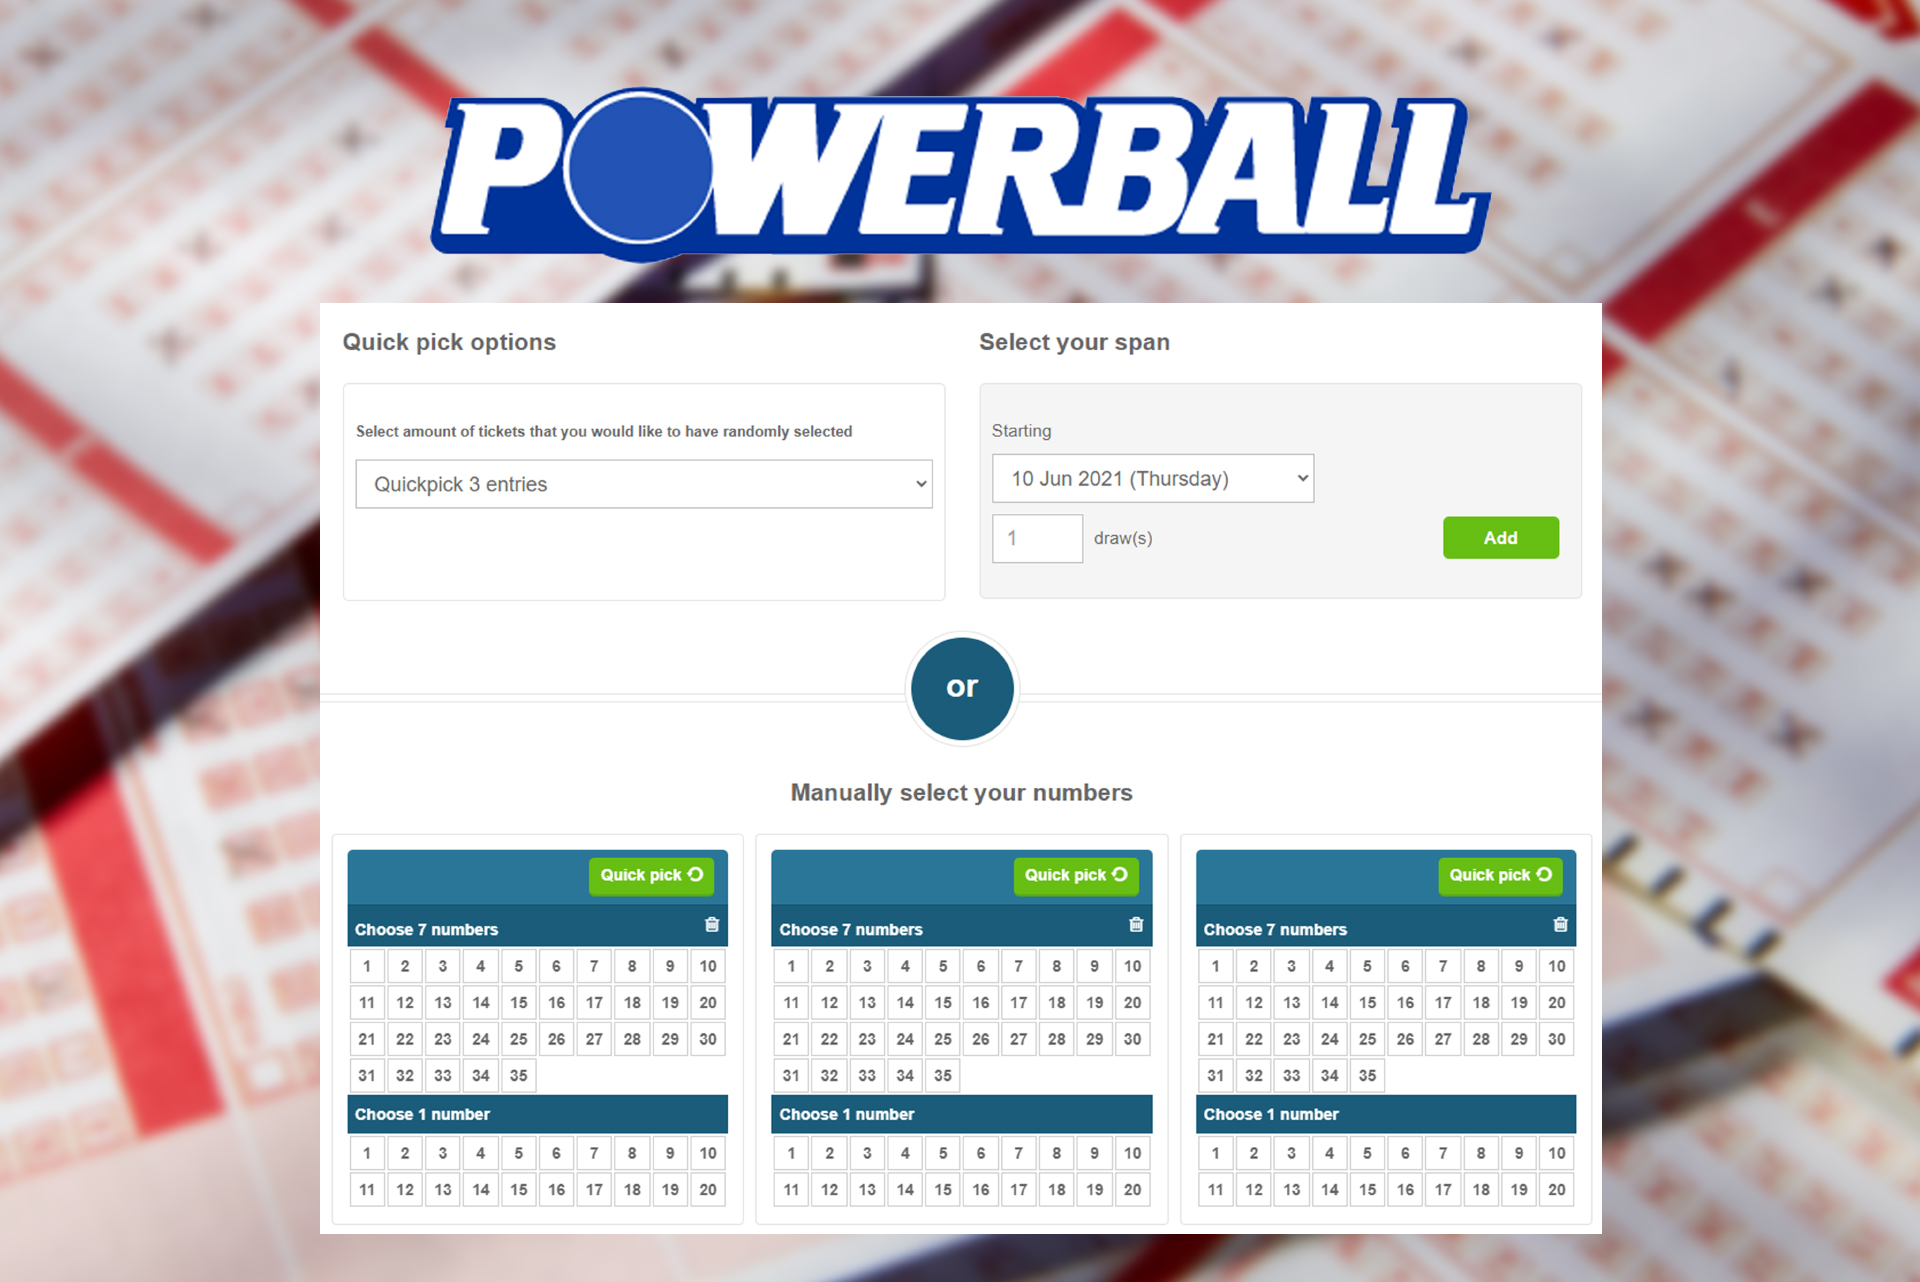 Oz Powerball is an Australian lottery with cheap tickets and a 3 million dollar jackpot.